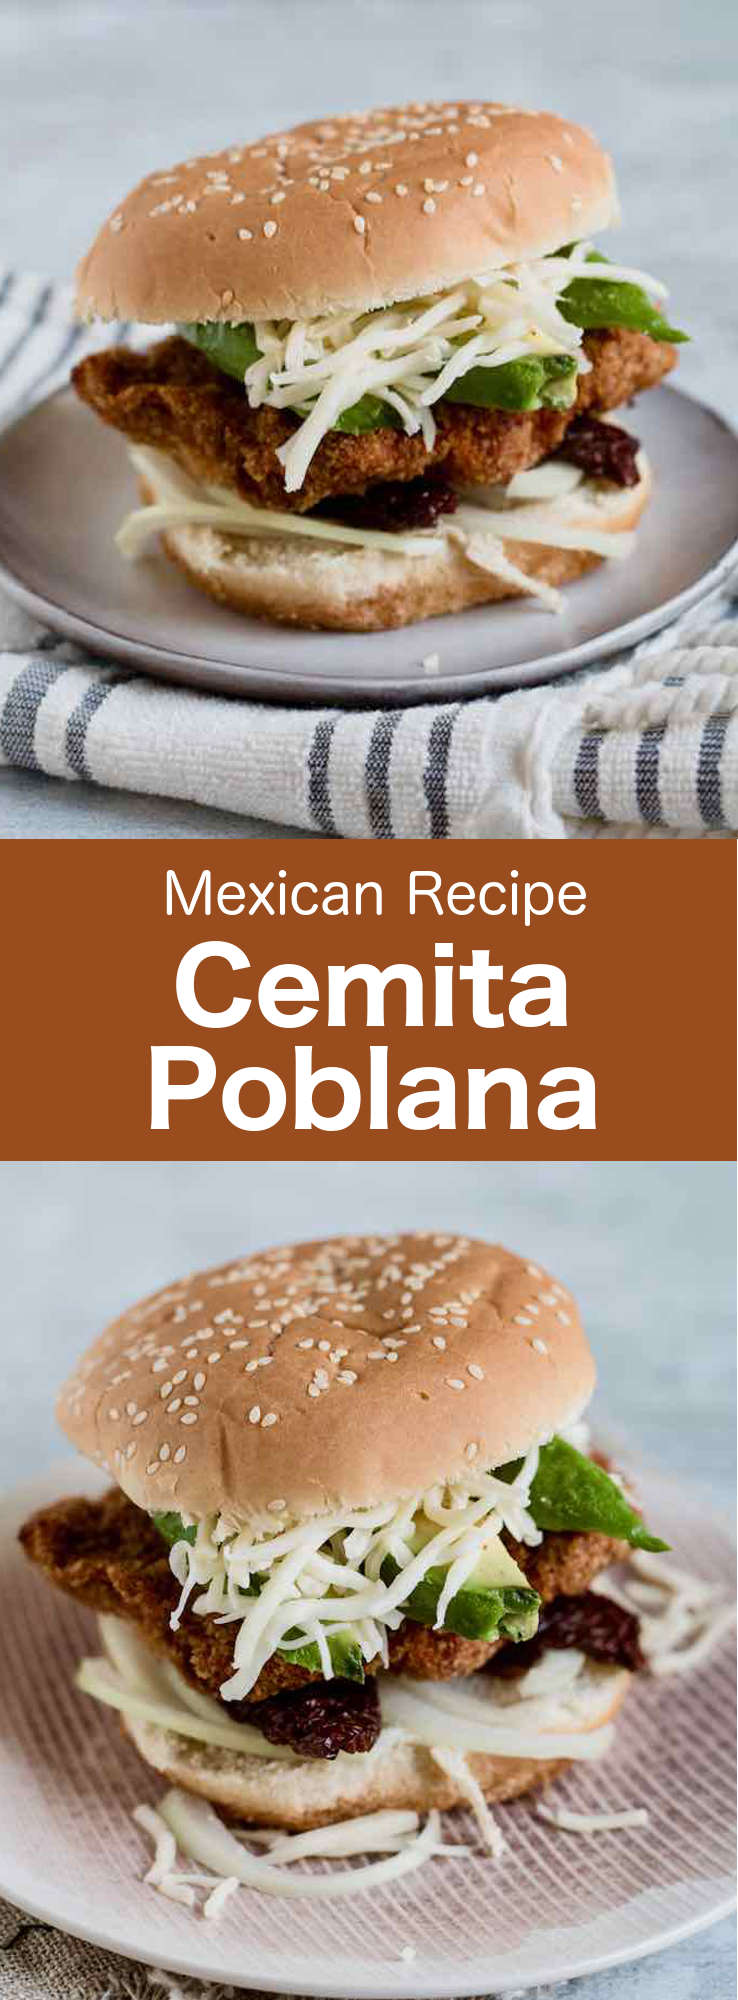 Cemita poblana is a traditional Mexican sandwich that is filled with breaded chicken, pork or beef, as well as avocado, Oaxaca cheese and chipotles. #Mexican #MexicanFood #MexicanCuisine #MexicanRecipe #WorldCuisine #196flavors